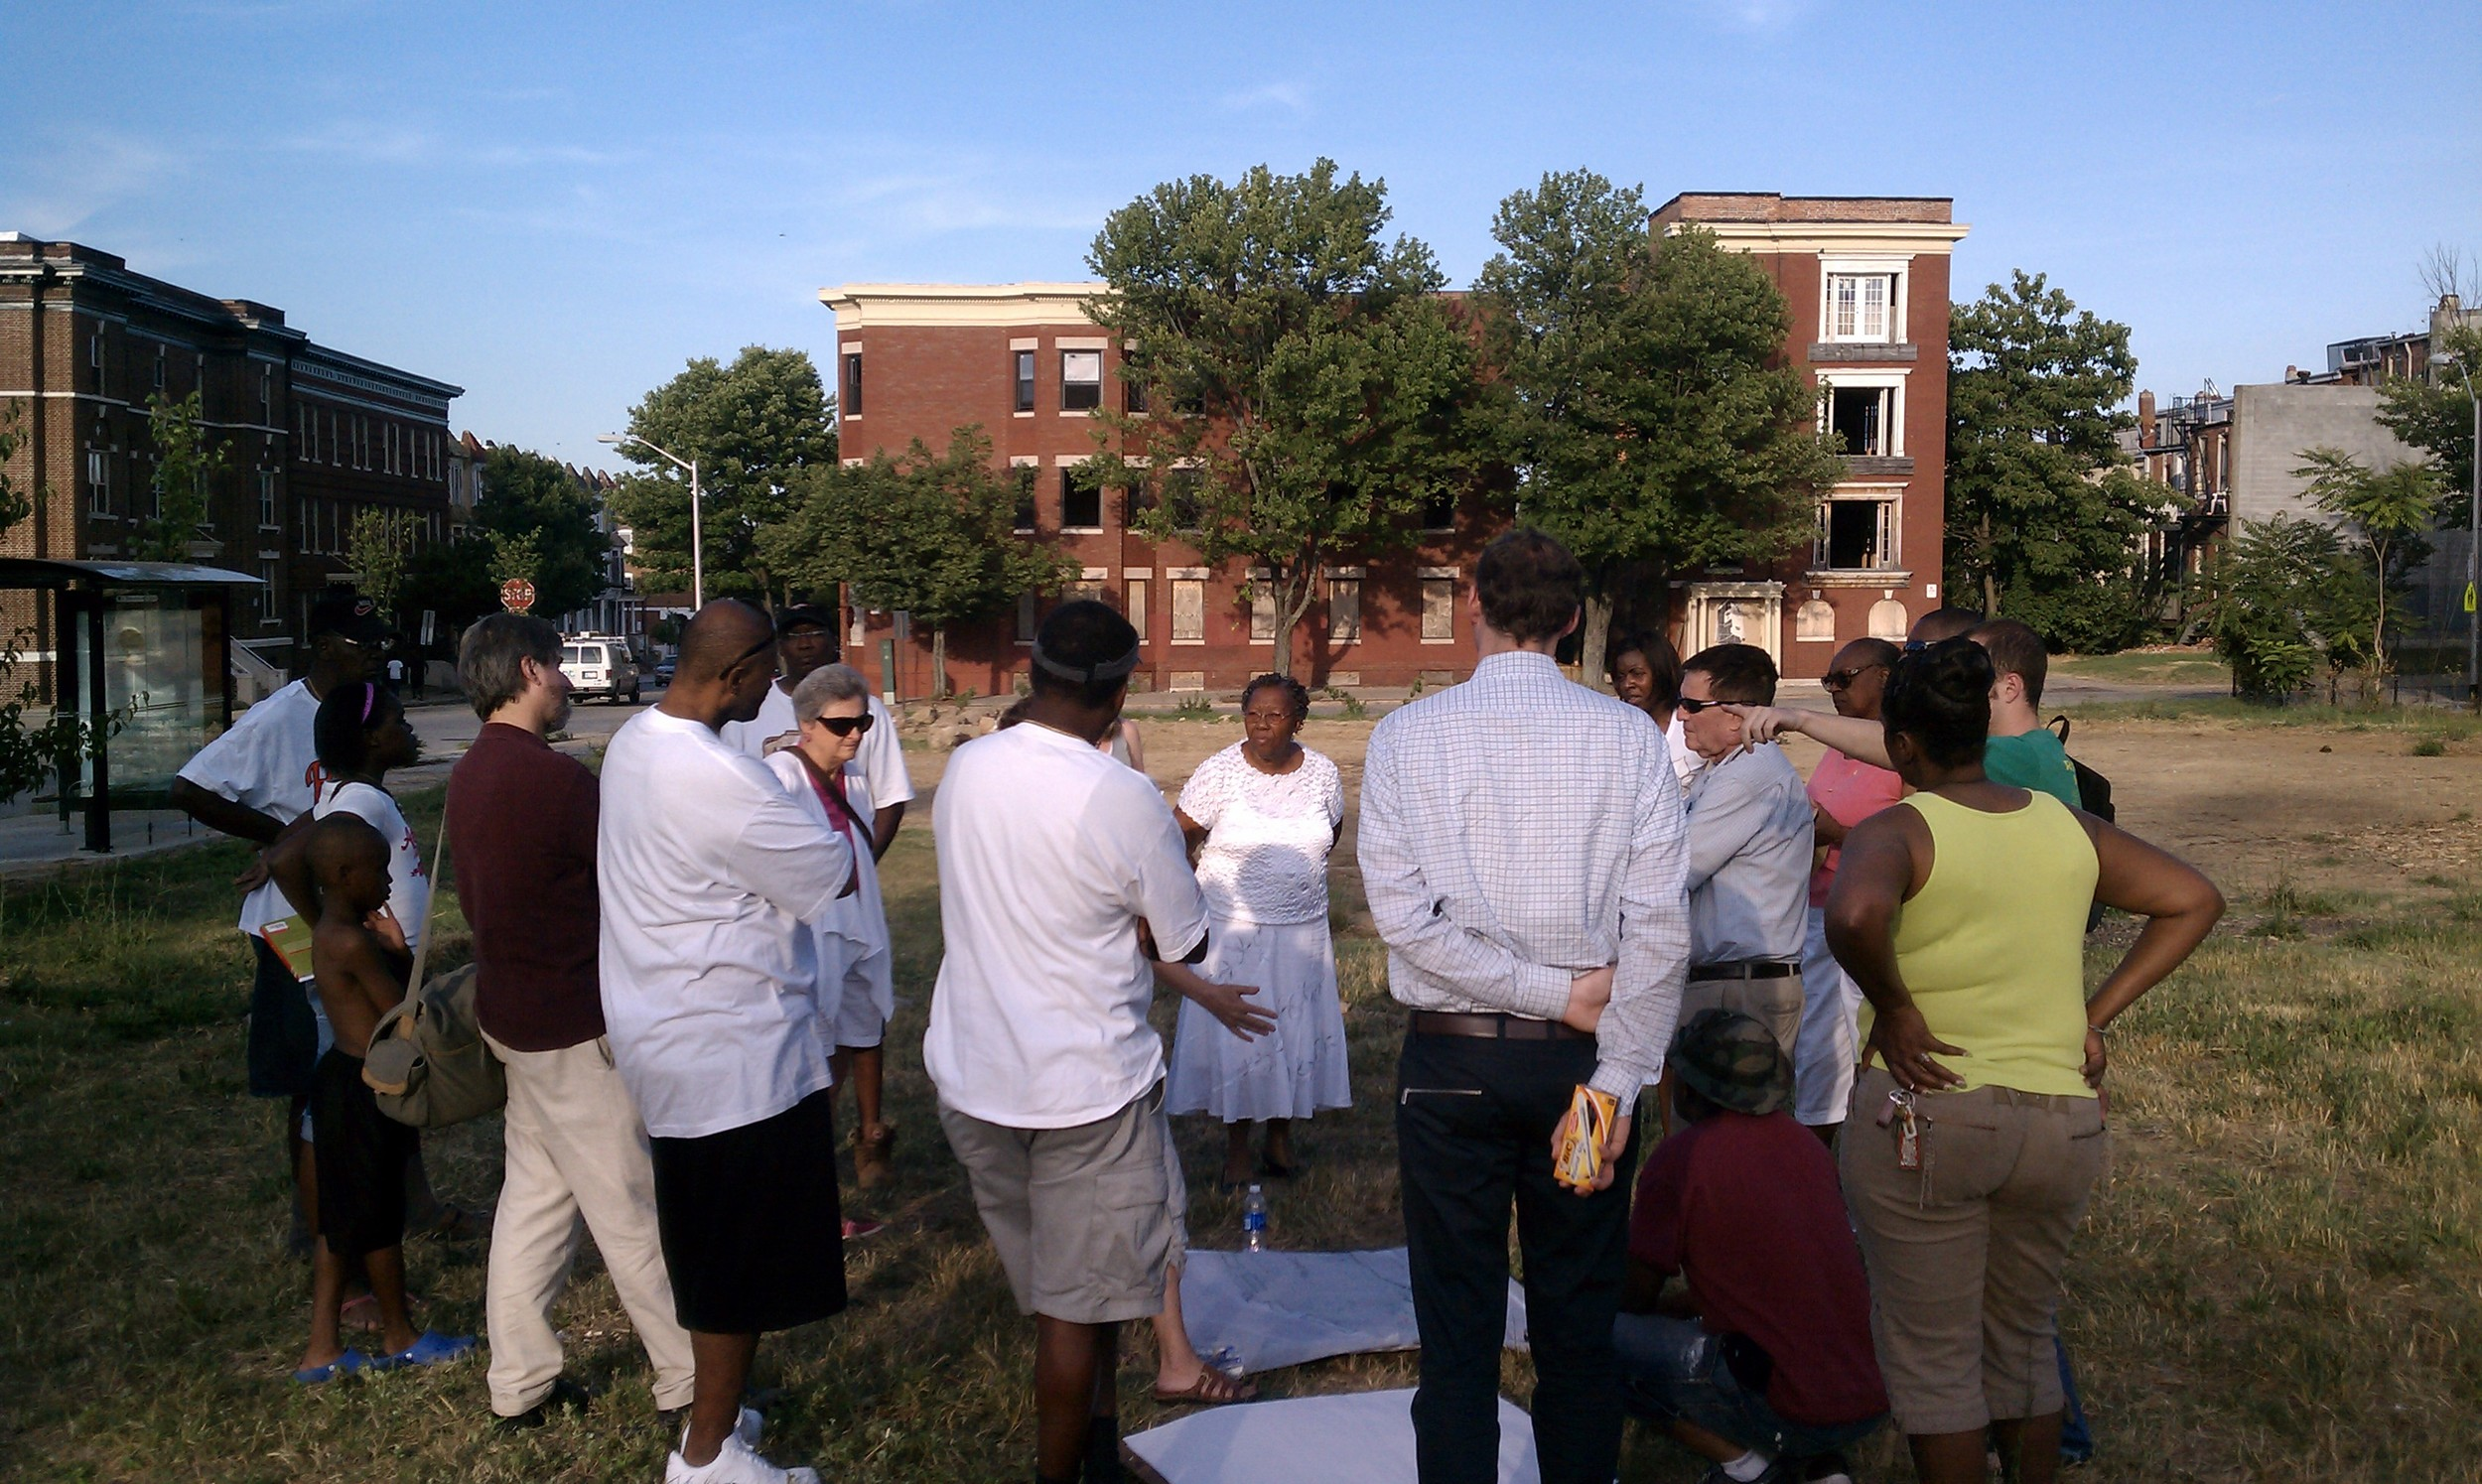 Residents gather at a design meeting (Summer 2011)